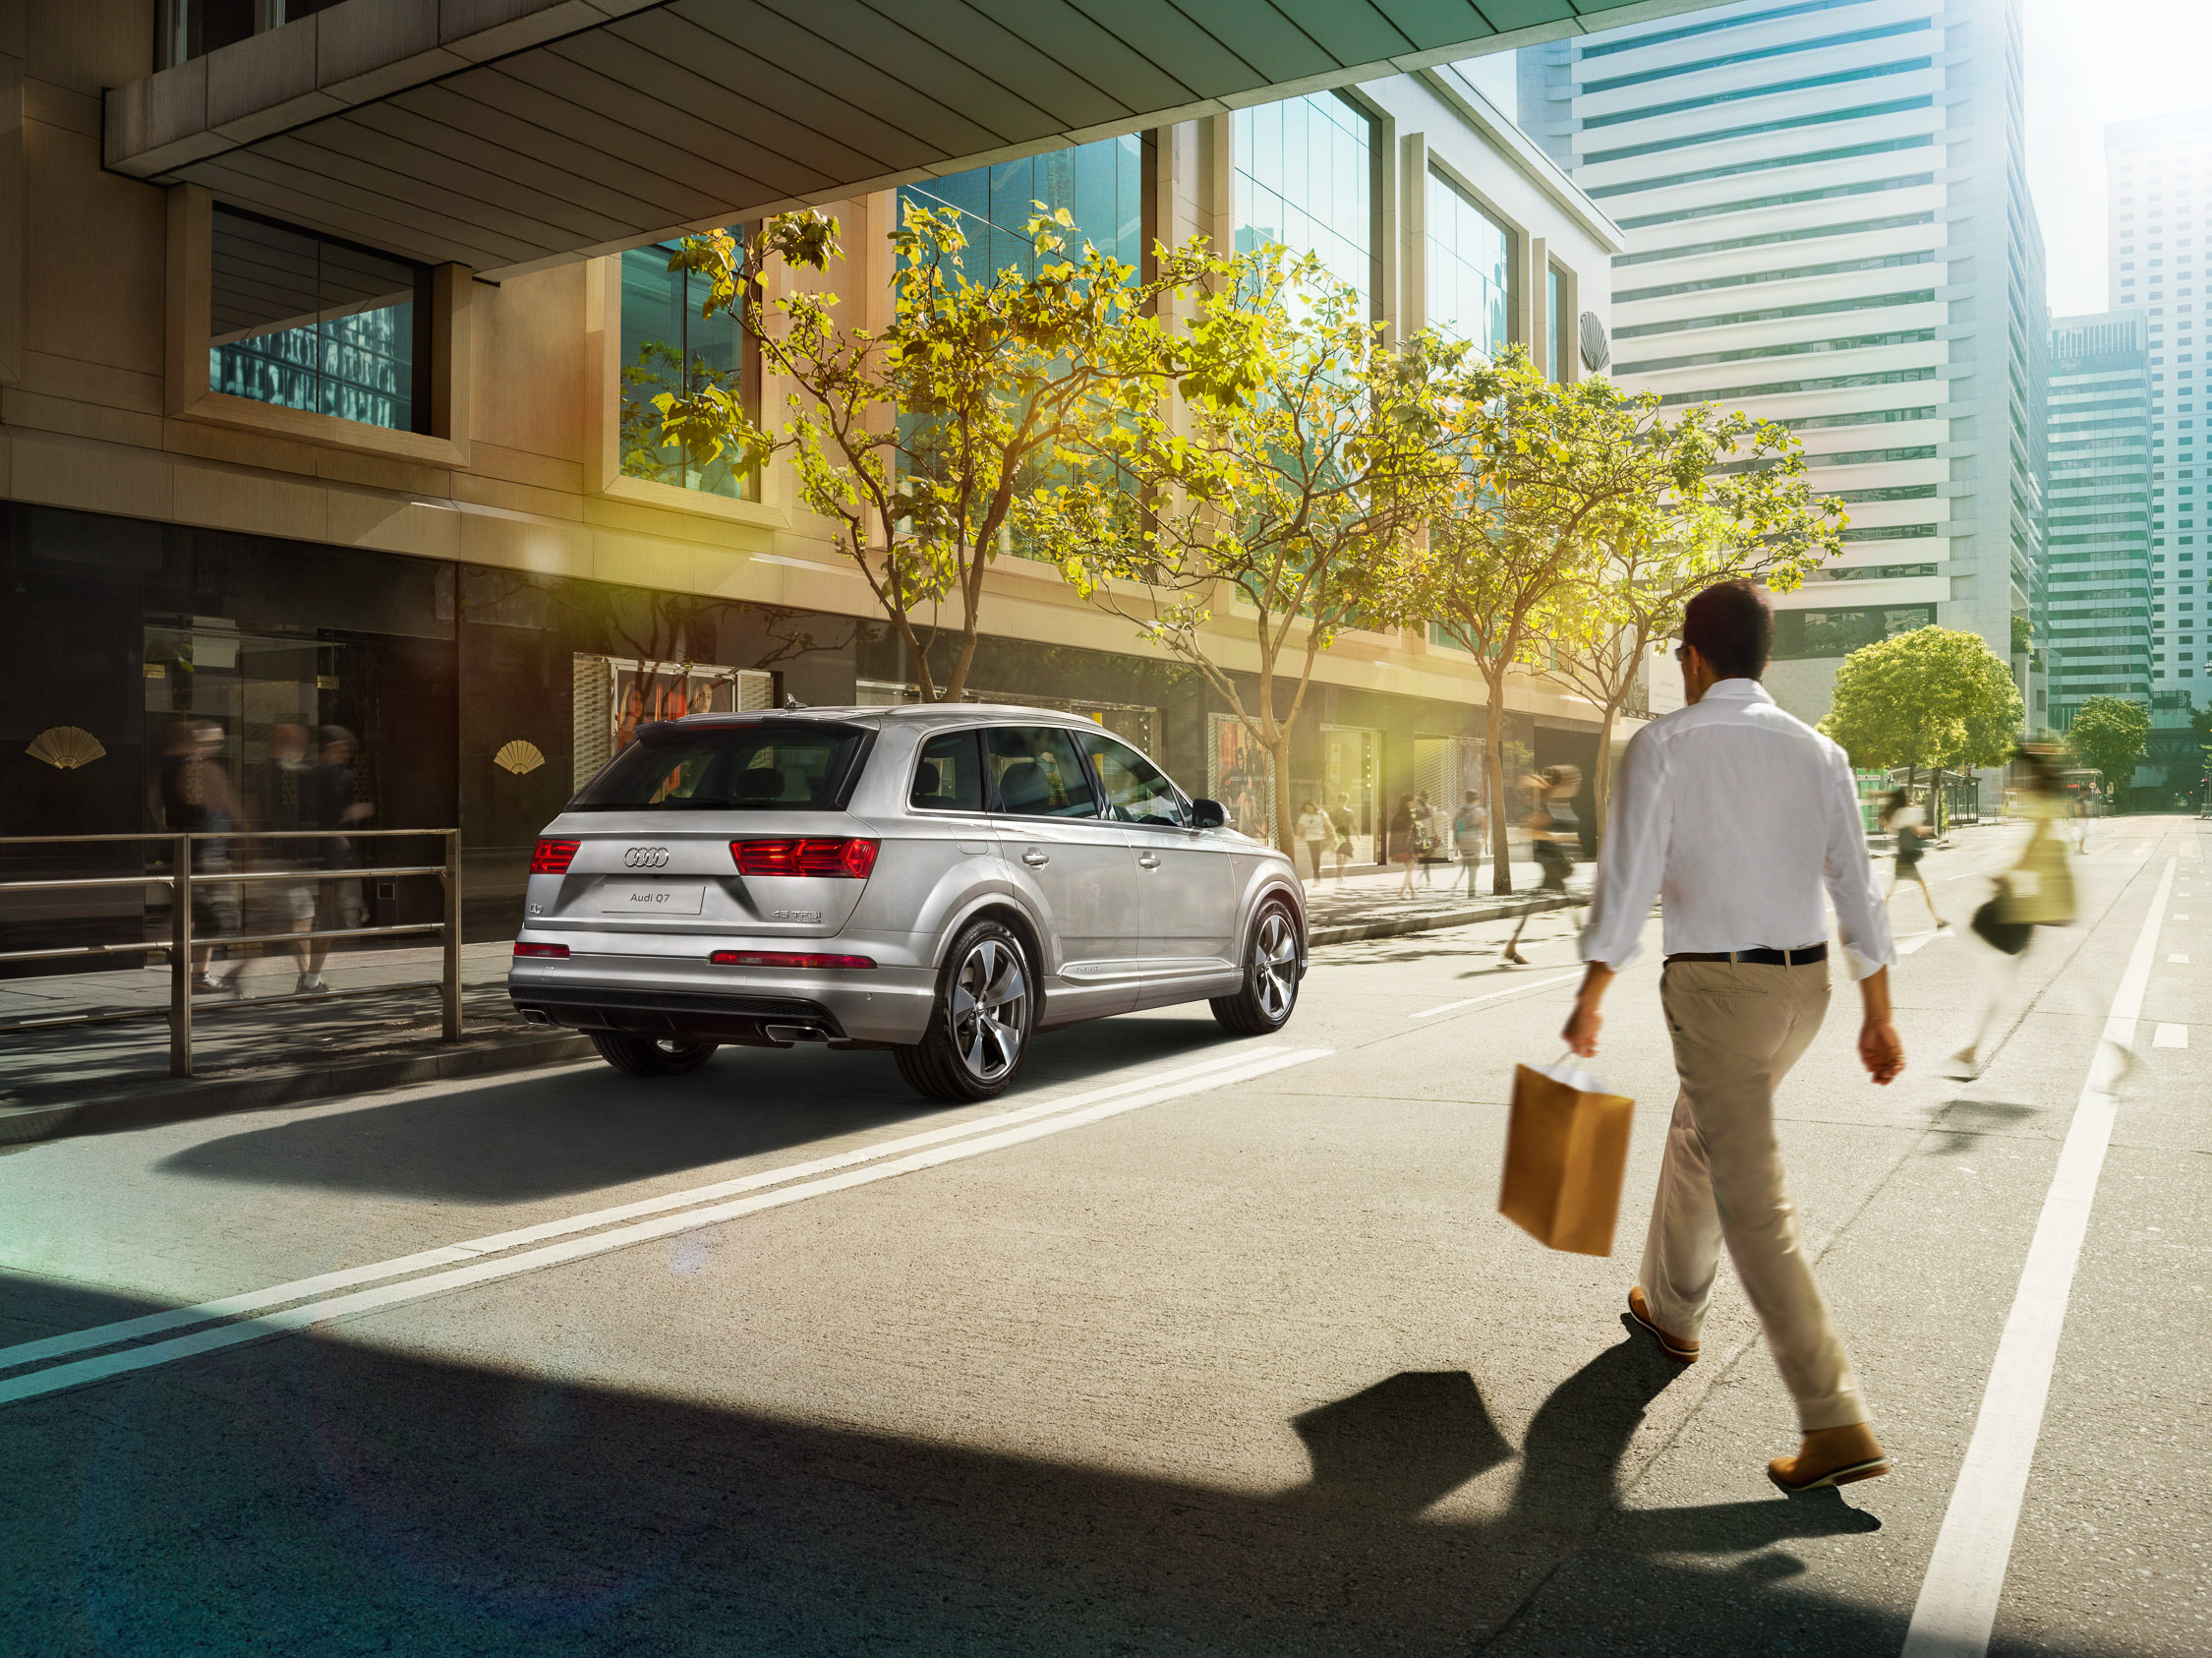 migs-foto-cgi-photographer-automotive-car-hong-kong-michael-lee-advtertising-commercial-photography-Audi-2016-HK Q7_ChaterRoad_FINAL-2.25K